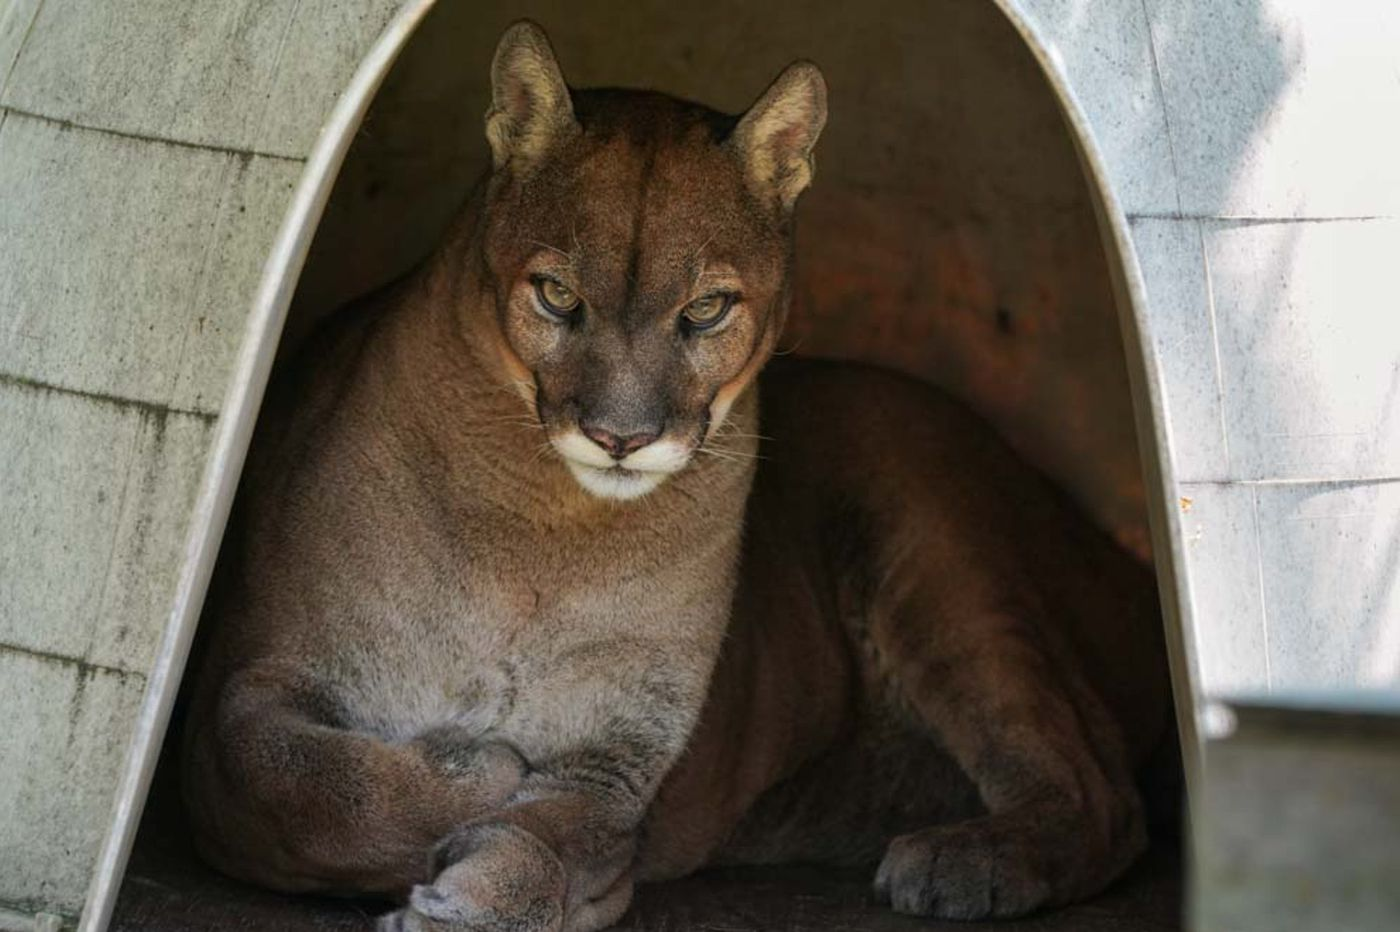 Spotting Mountain Lions Is Becoming A Pennsylvania Pastime